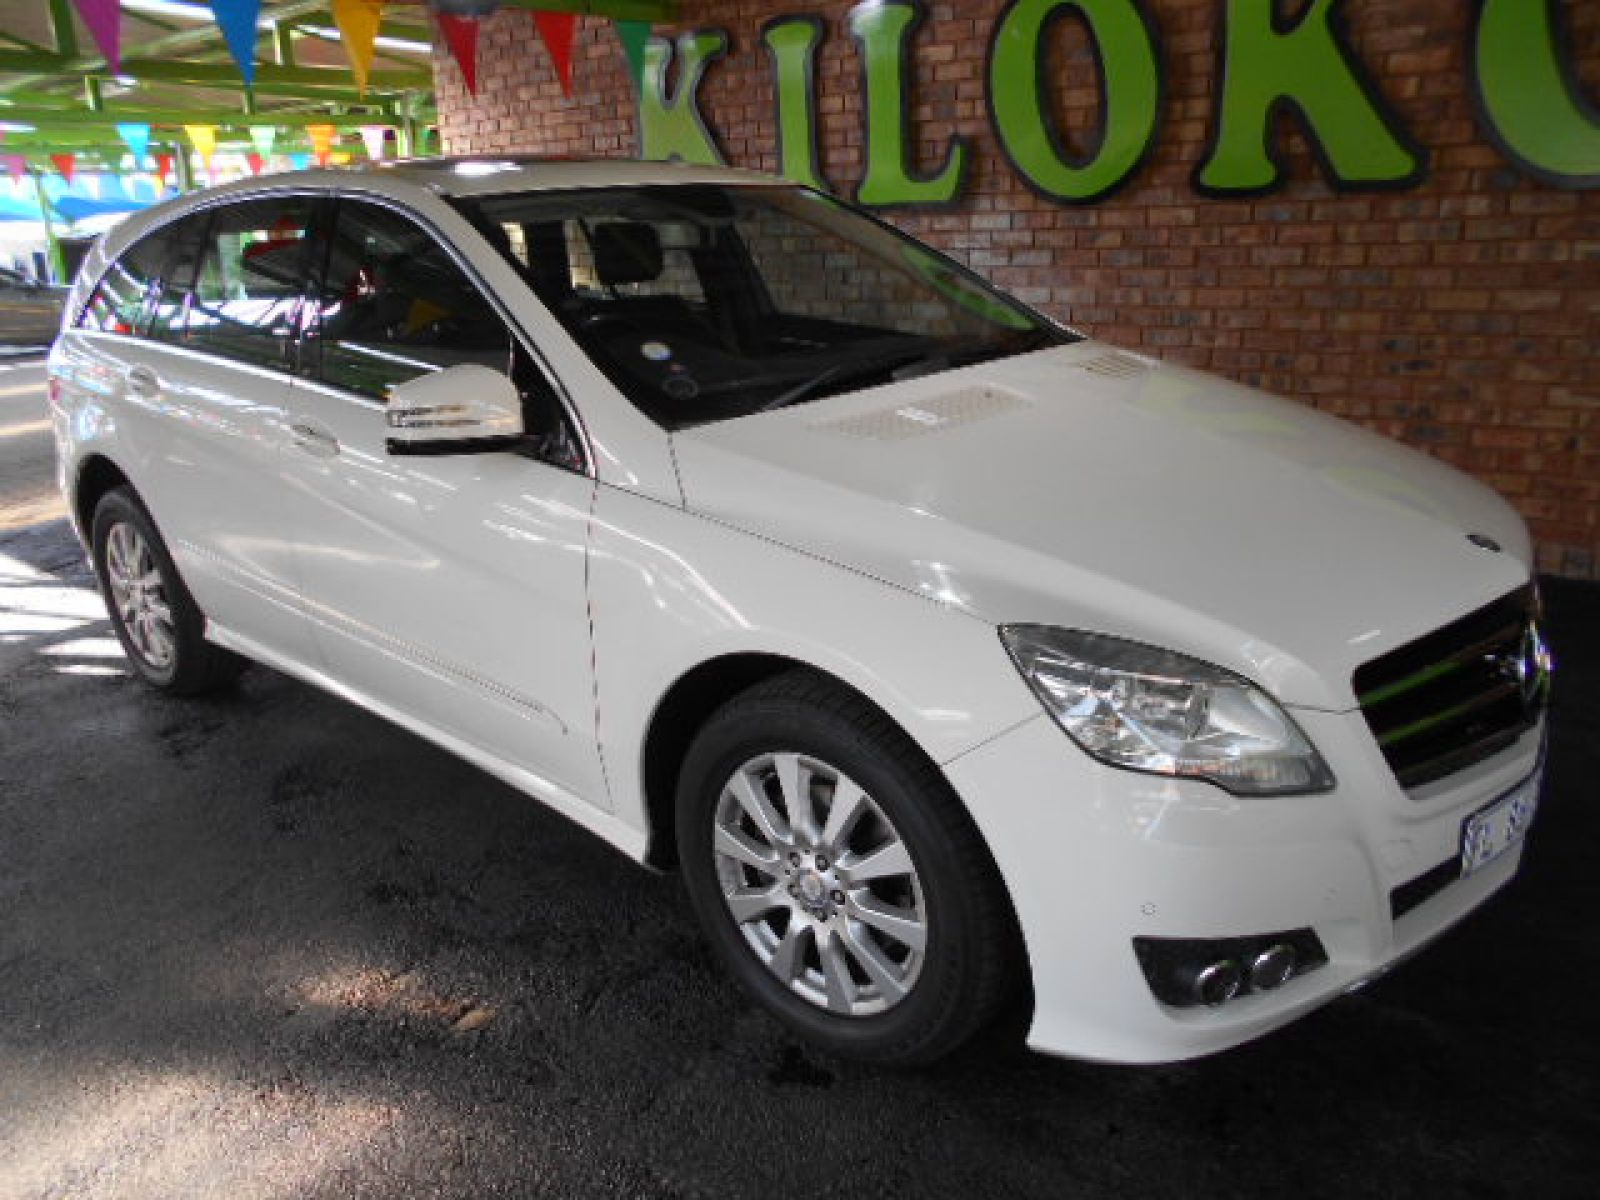 2013 mercedes benz r class r 319 990 for sale kilokor motors for Mercedes benz r class 2013